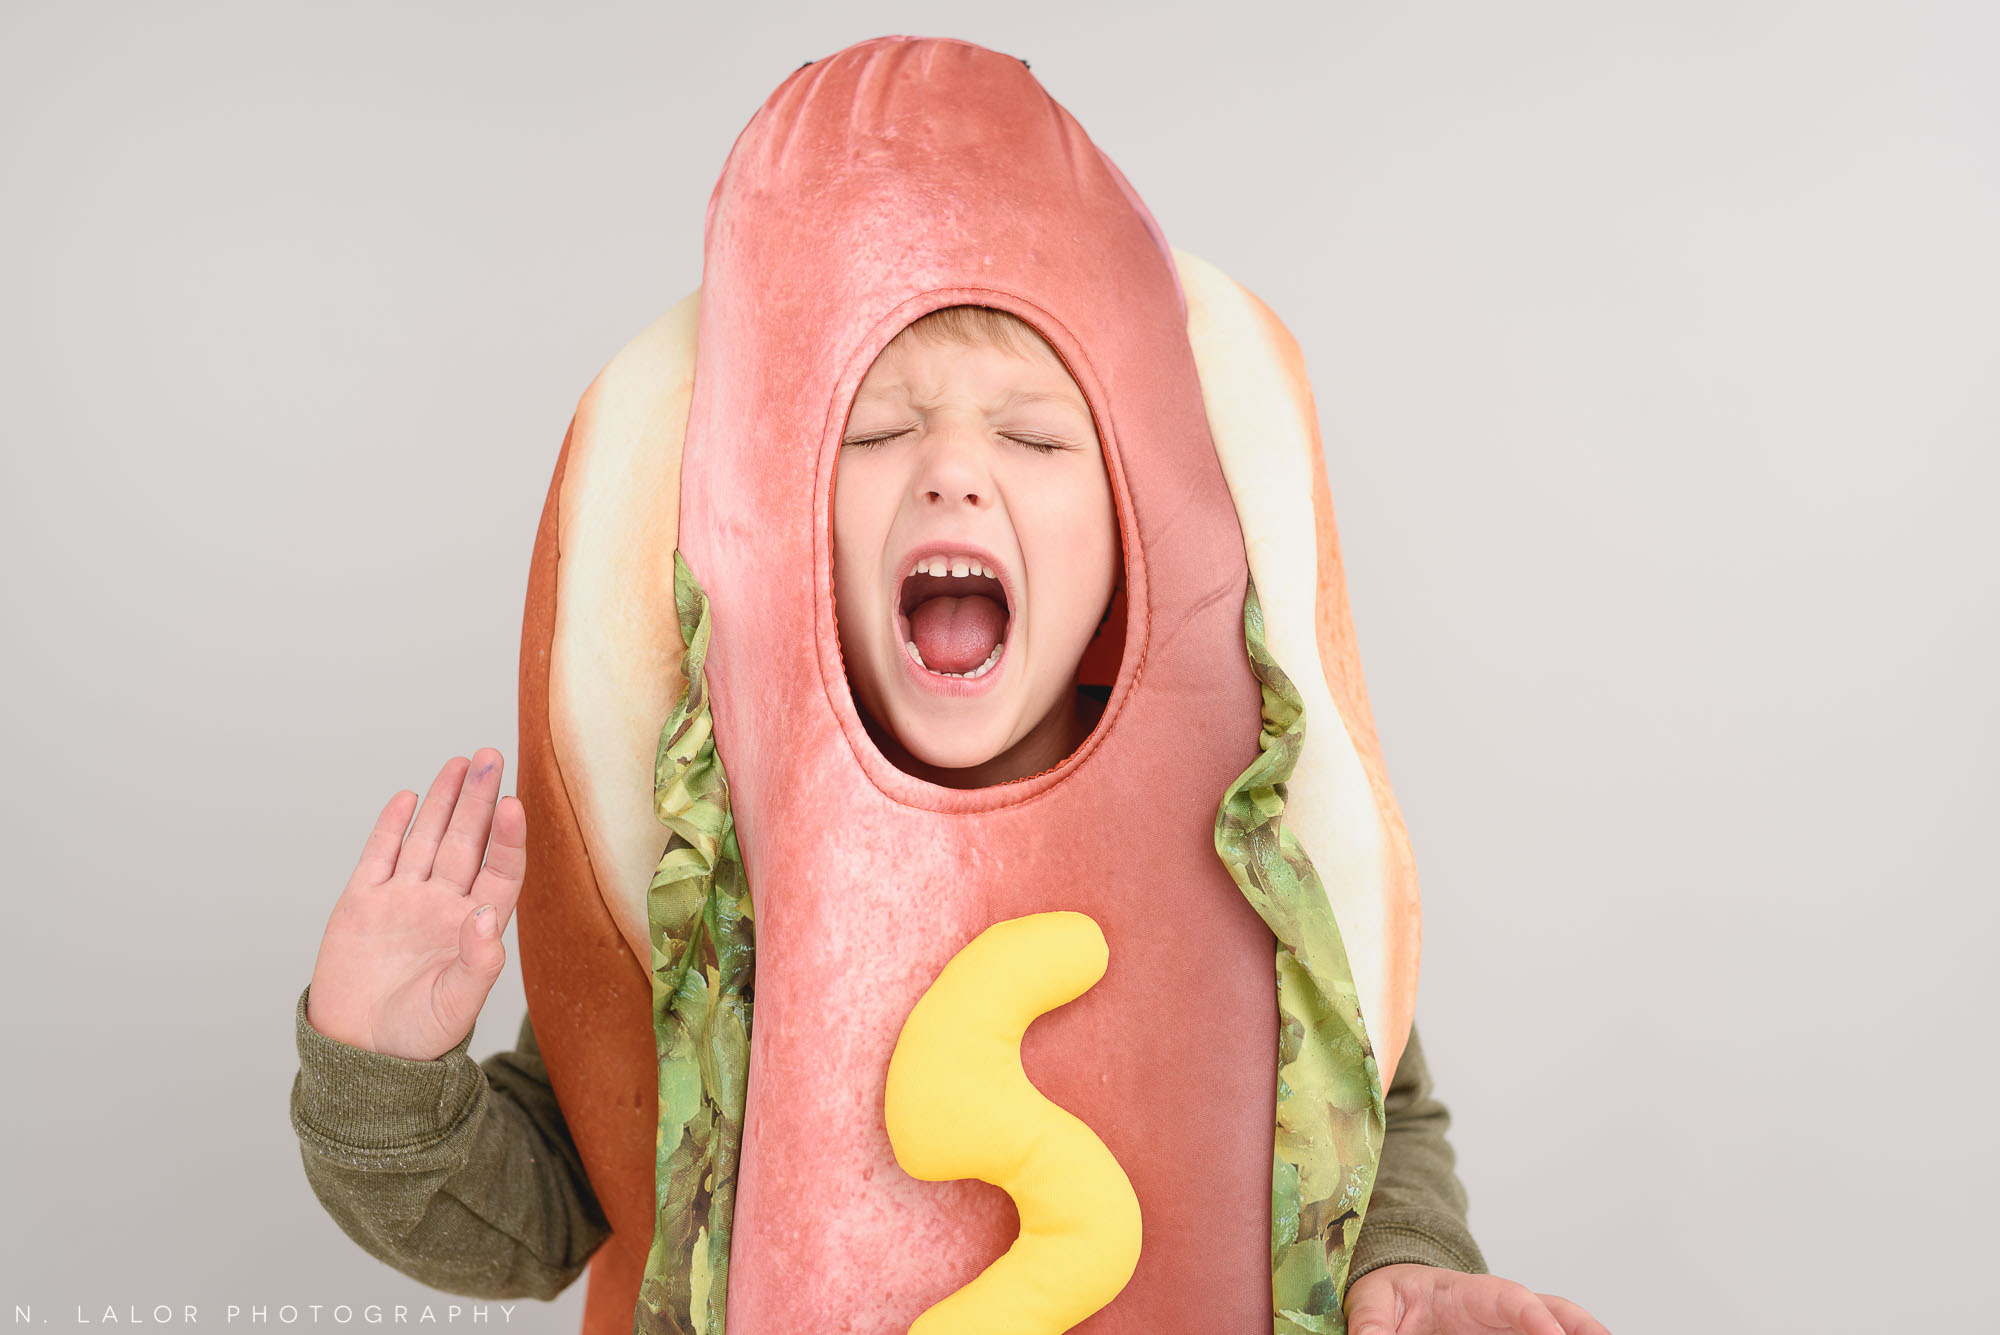 Hot dog. Halloween Kids Portrait by N. Lalor Photography. Greenwich, Connecticut.